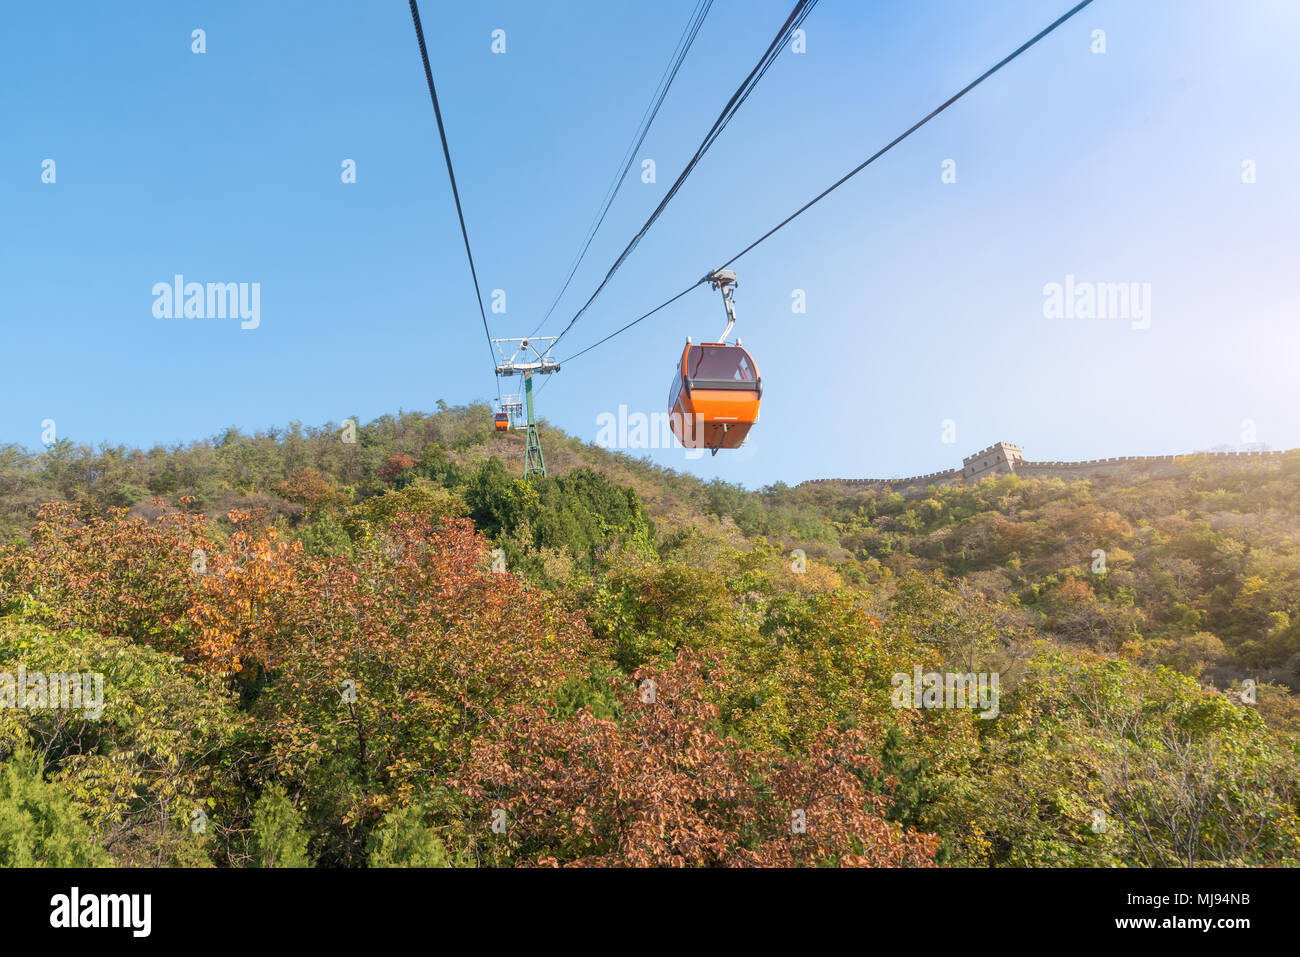 Cable car taking visitors up to the Mutianyu section of the Great Wall of China located in Huairou Country northeast of Central Beijing. Stock Photo